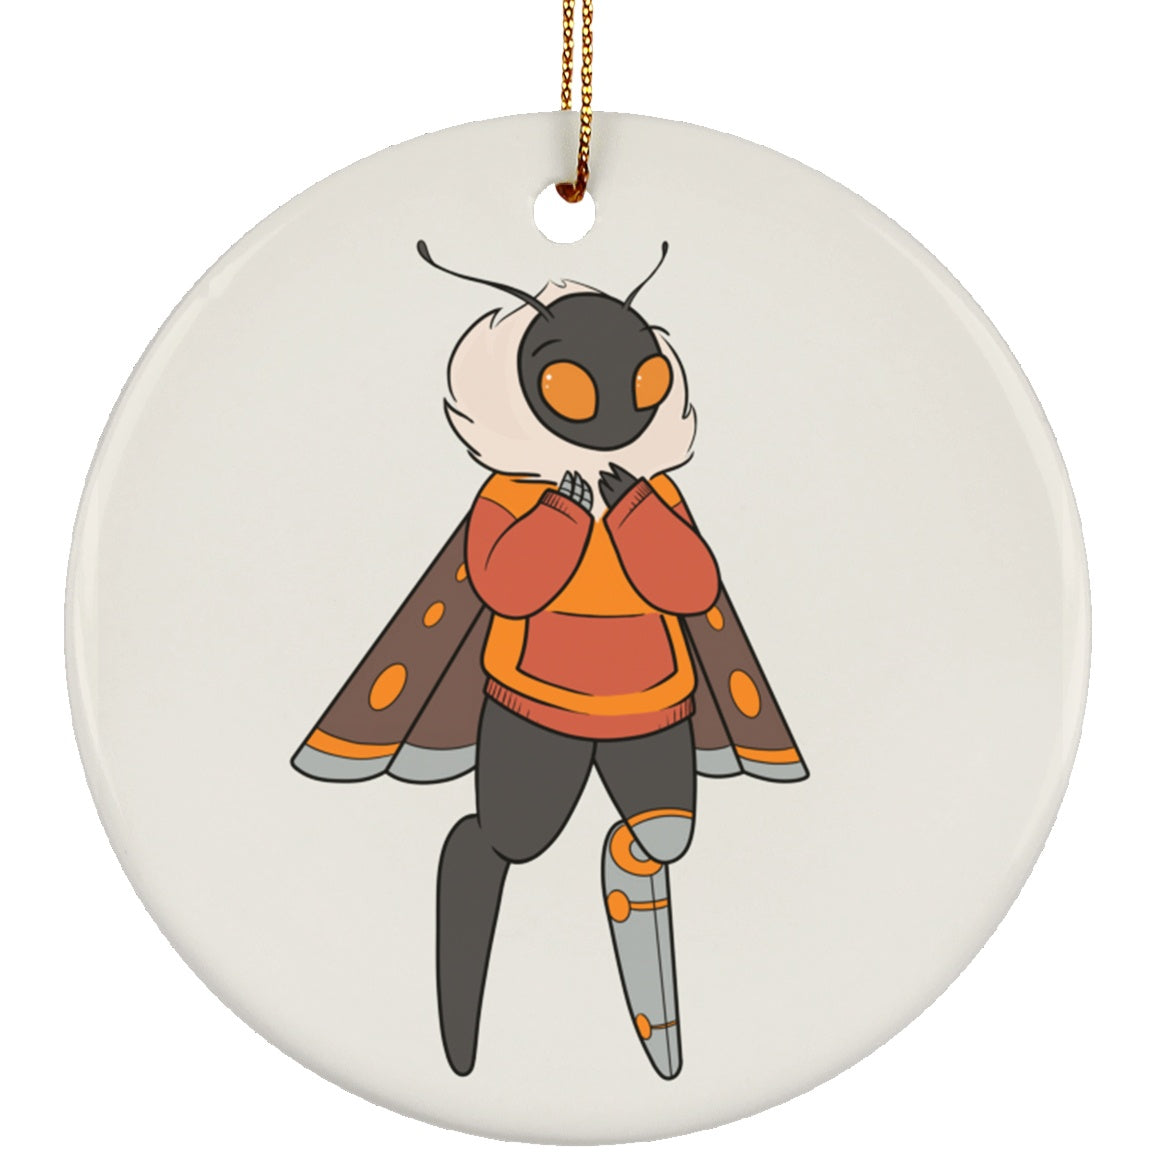 Toni the Amputee Monster Circle Ornament - The Unchargeables